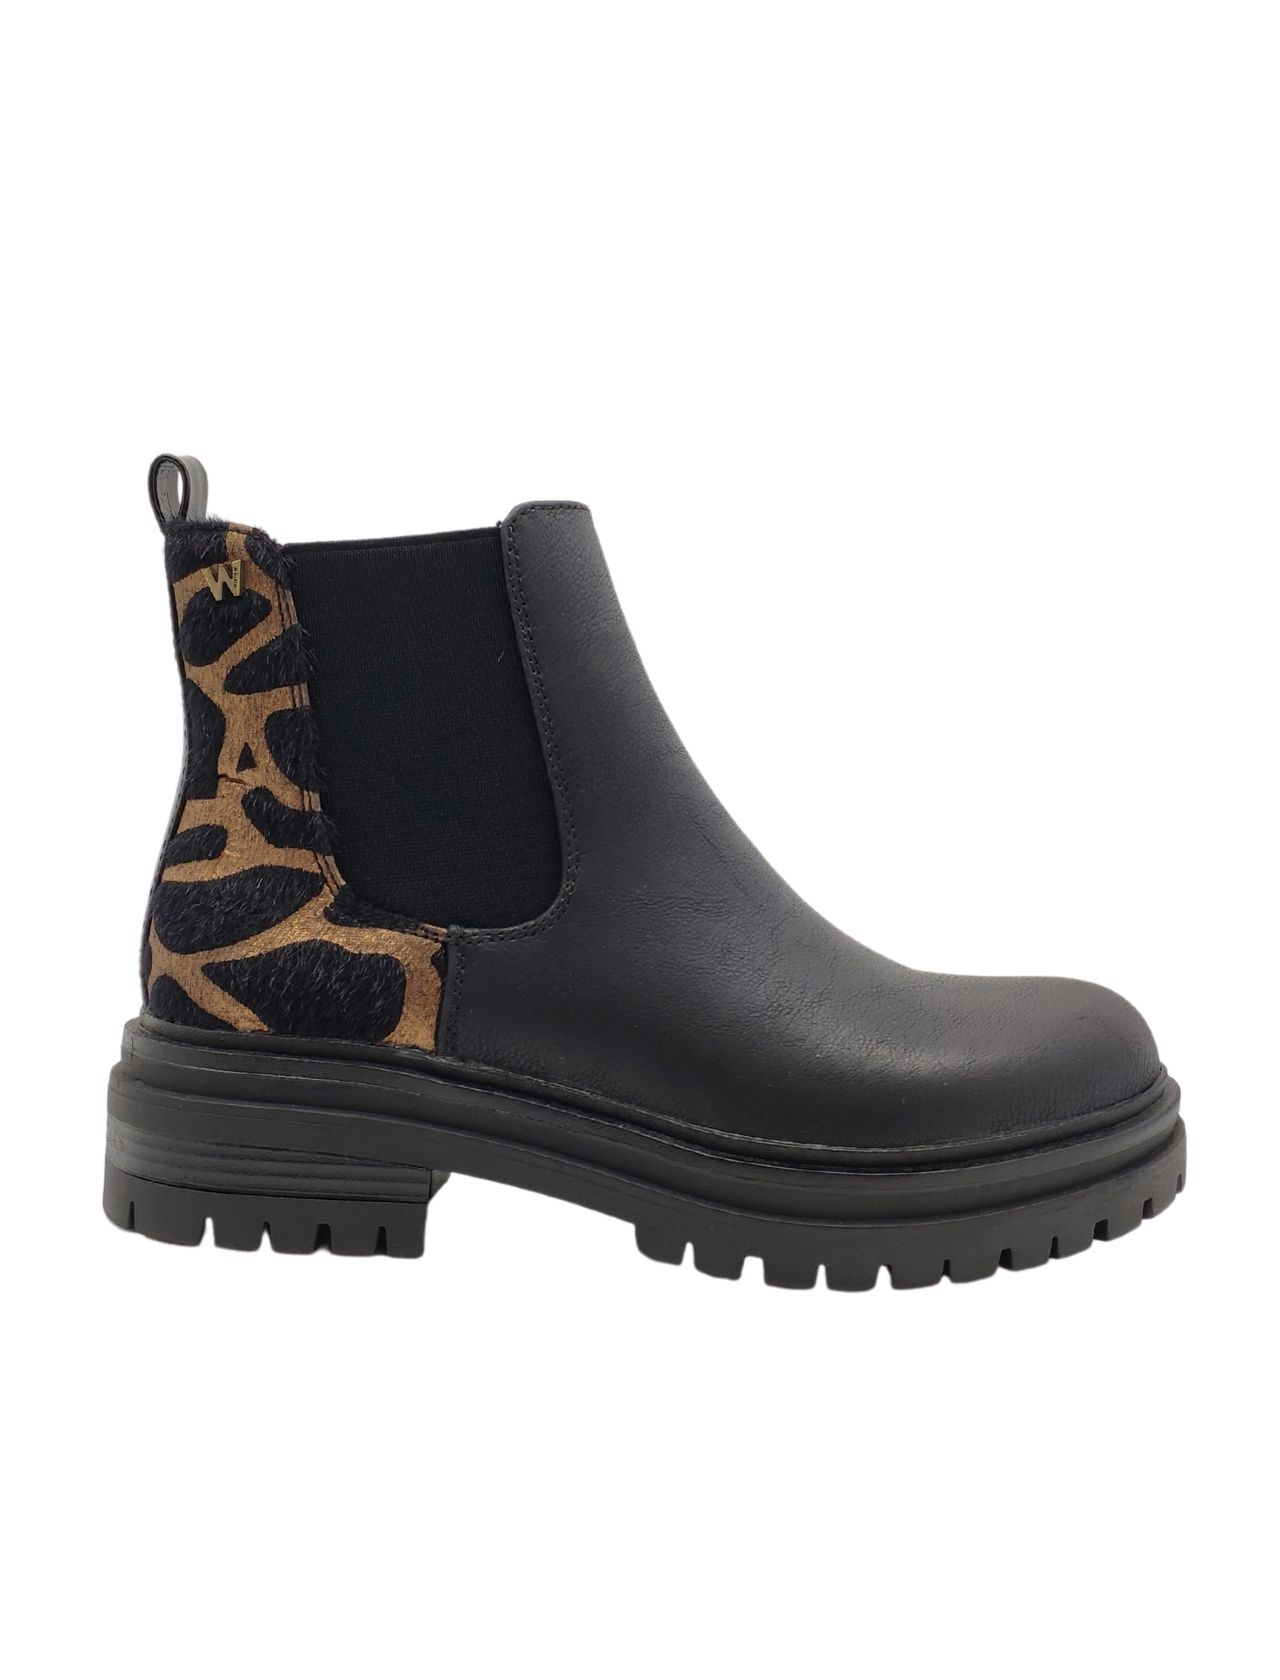 Beatles Women's Ankle Boots Wrangler | Ankle Boots | WL02638A062